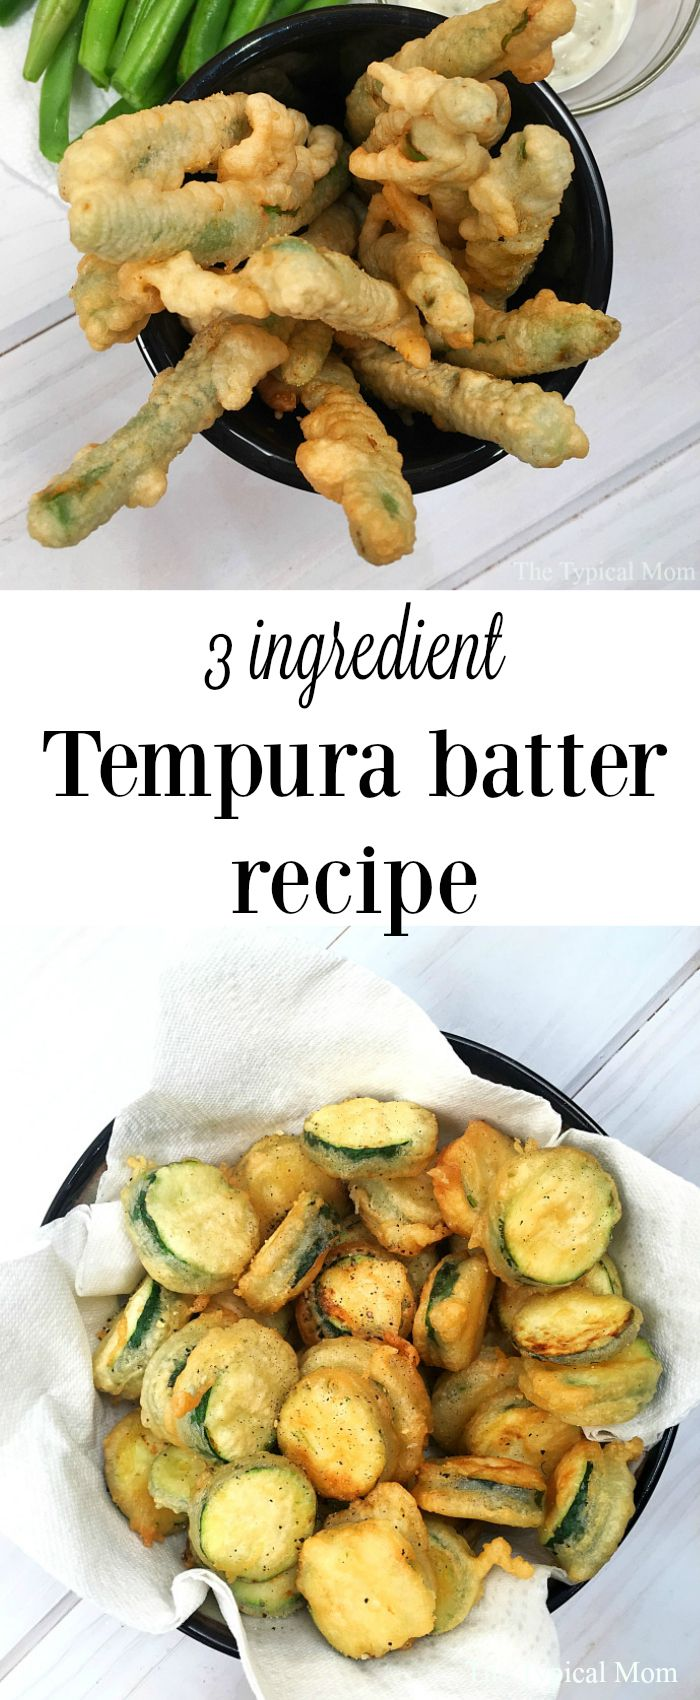 SO easy!! Just water and 2 other things, you've gotta' try this recipe for tempura batter!! Make fried green beans and zucchini chips, amazing! (Sushi Ingredients Japanese Food)